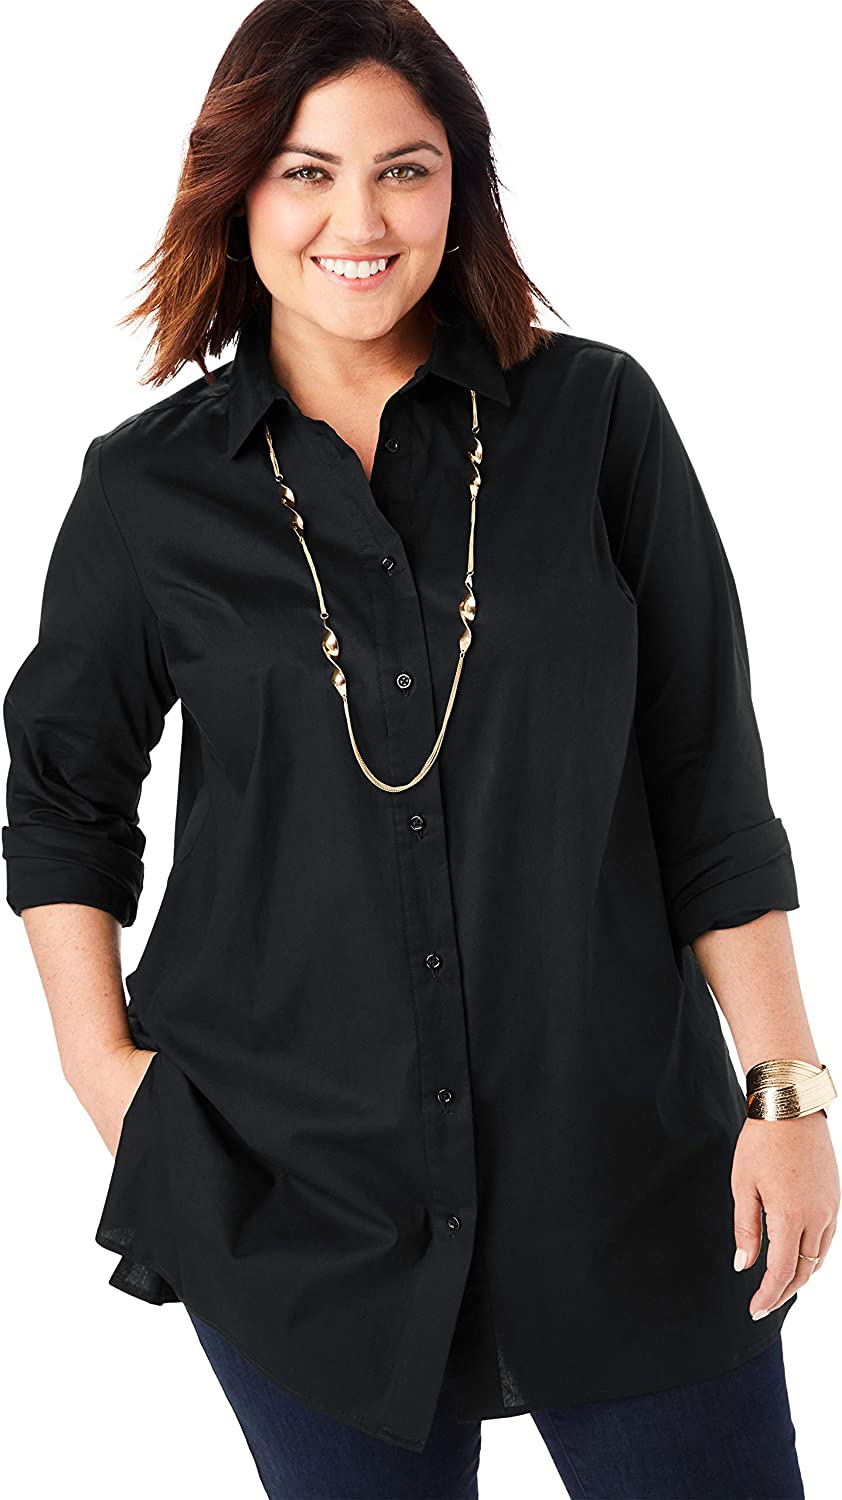 Don't miss the campaign Jessica London Women's Plus Size Poplin Down Button Tunic OFFer S Long